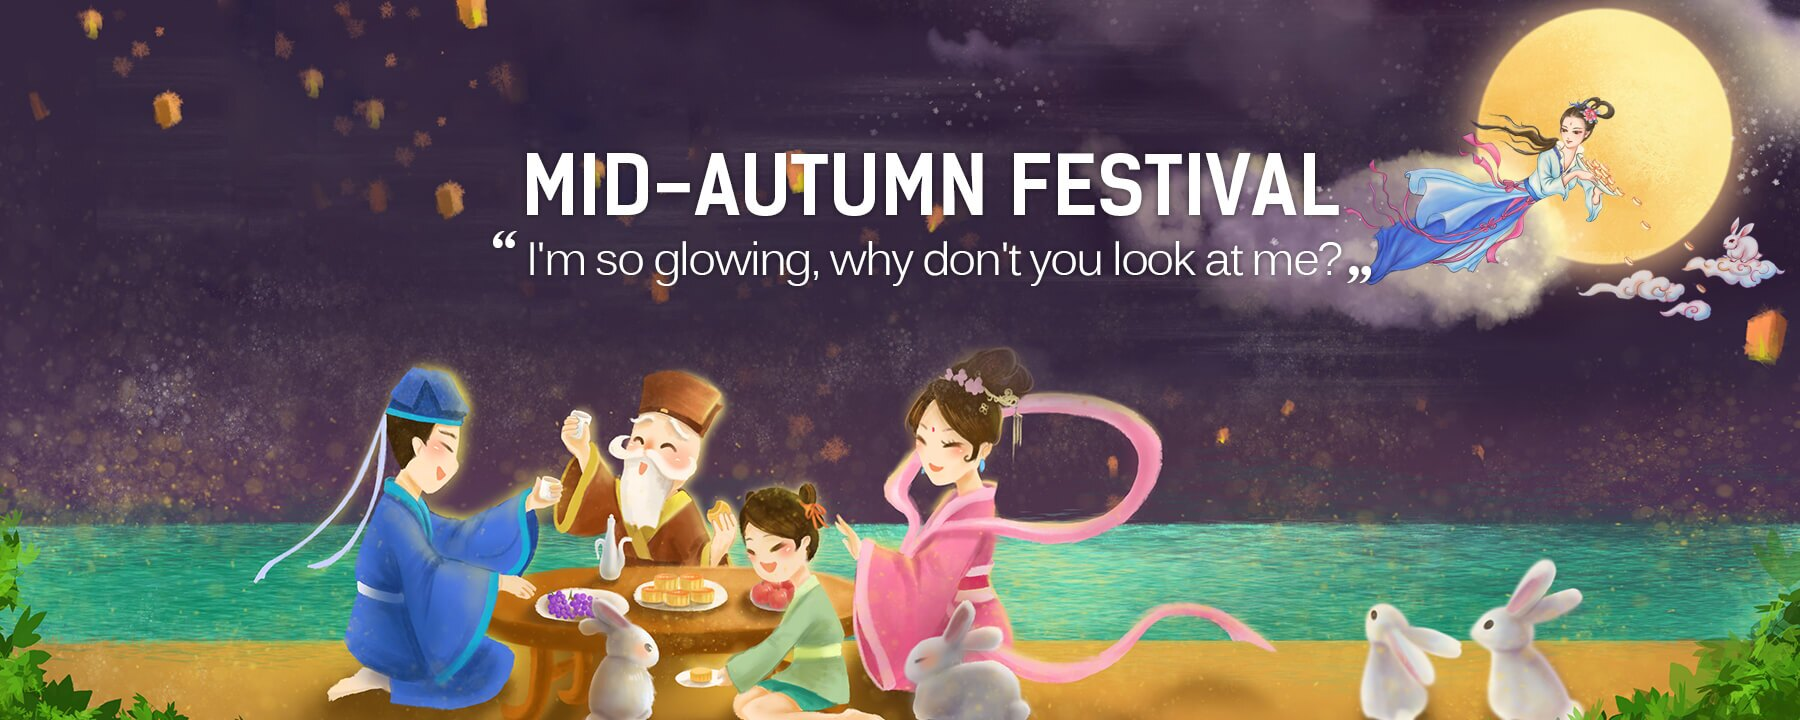 Mid Autumn Festival 2020.Mid Autumn Festival Dates In 2019 2020 2021